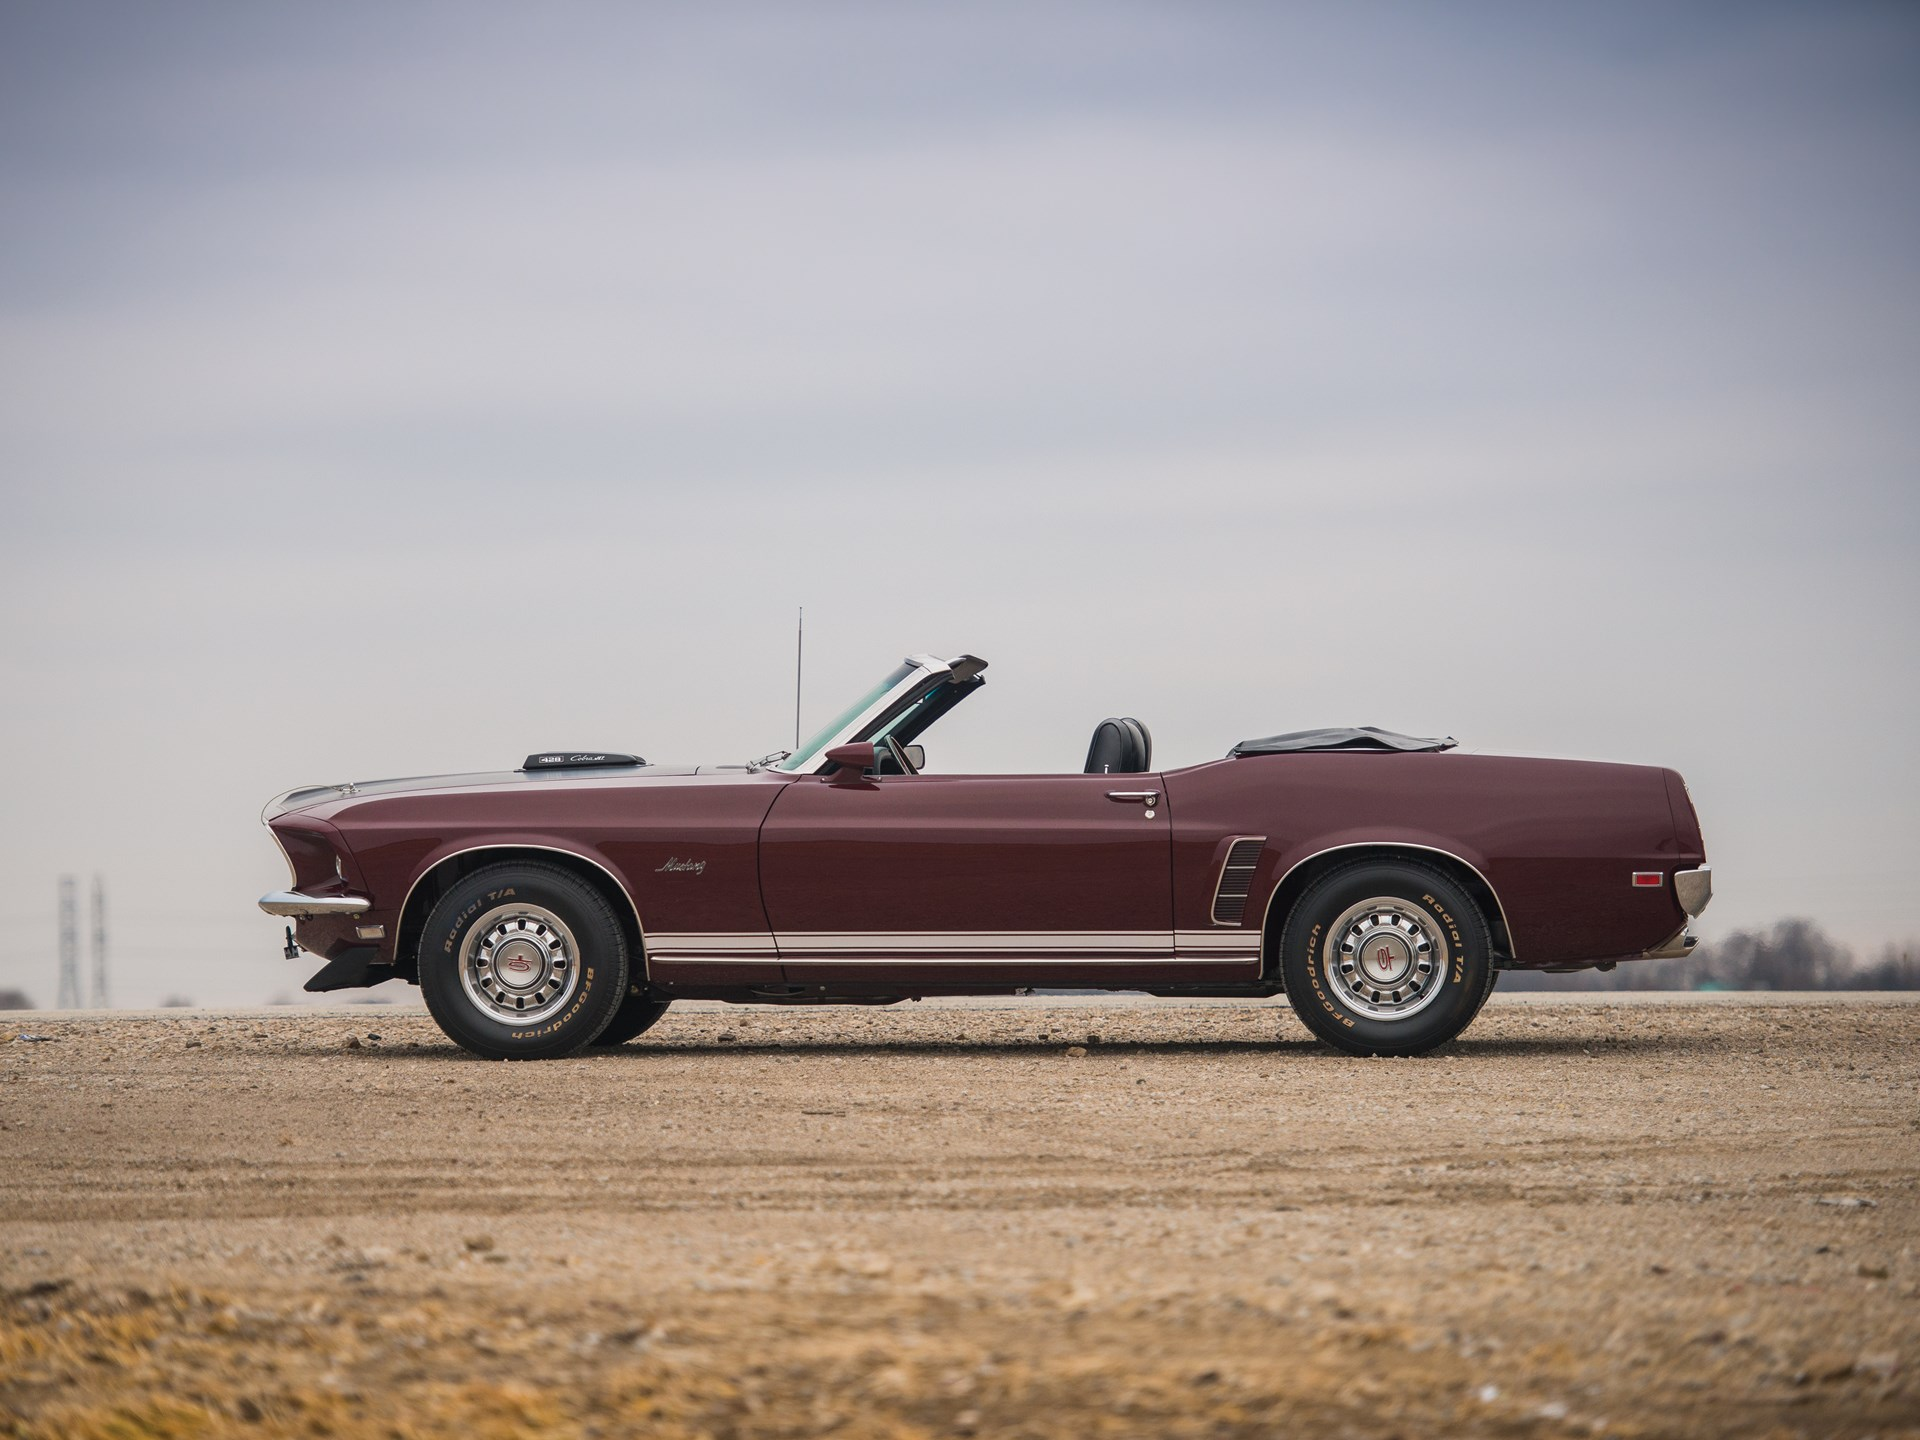 1969 Ford Mustang Gt Convertible For Sale Karmashares Llc 428 Cobra Jet